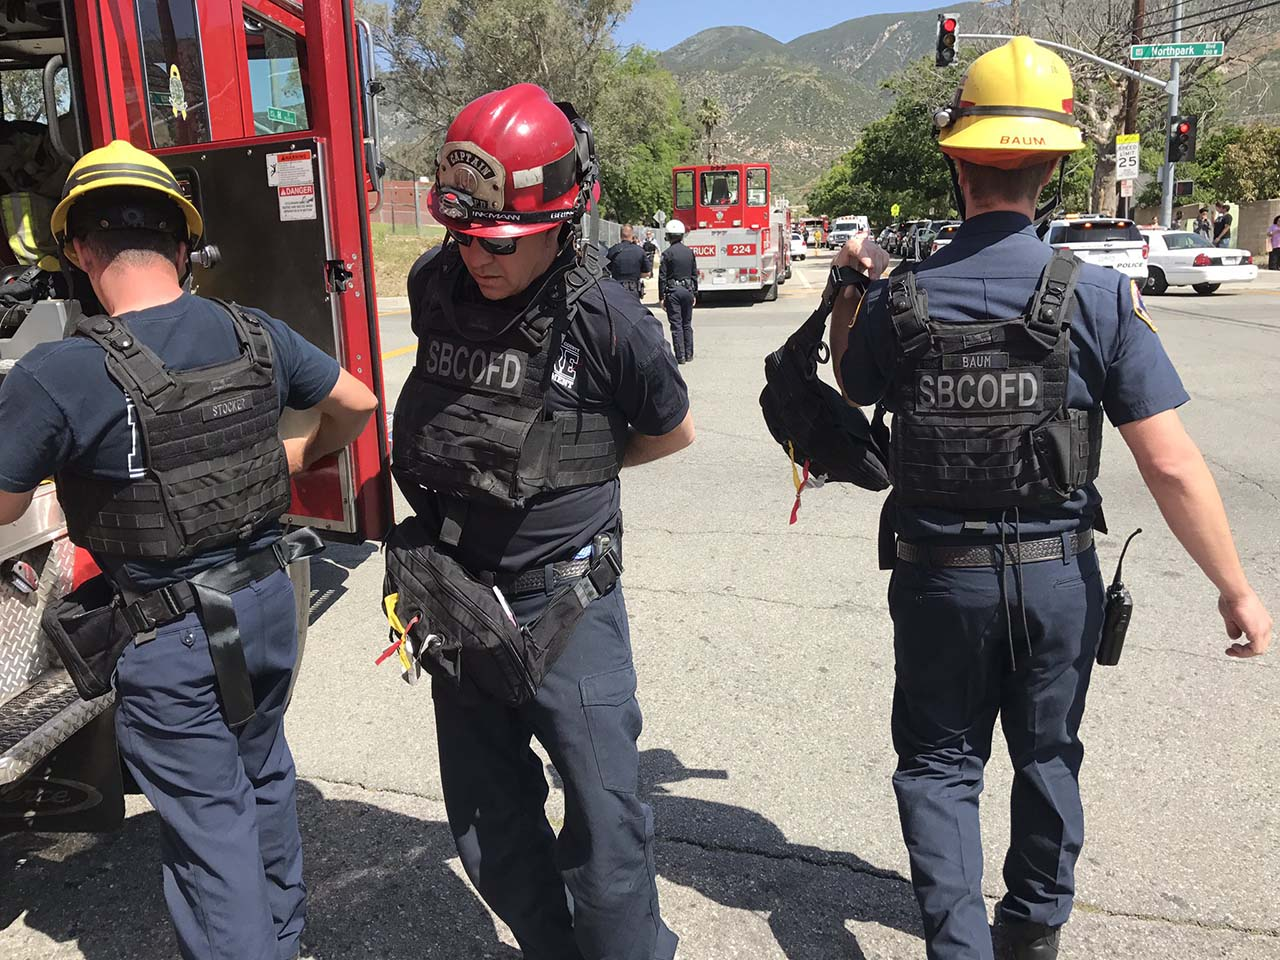 <div class='meta'><div class='origin-logo' data-origin='none'></div><span class='caption-text' data-credit='Photo/Rick Sforza with Southern California News Group'>Firefighters don body armor at North Park Elementary, where a shooting happened Monday, April 10, 2017.</span></div>